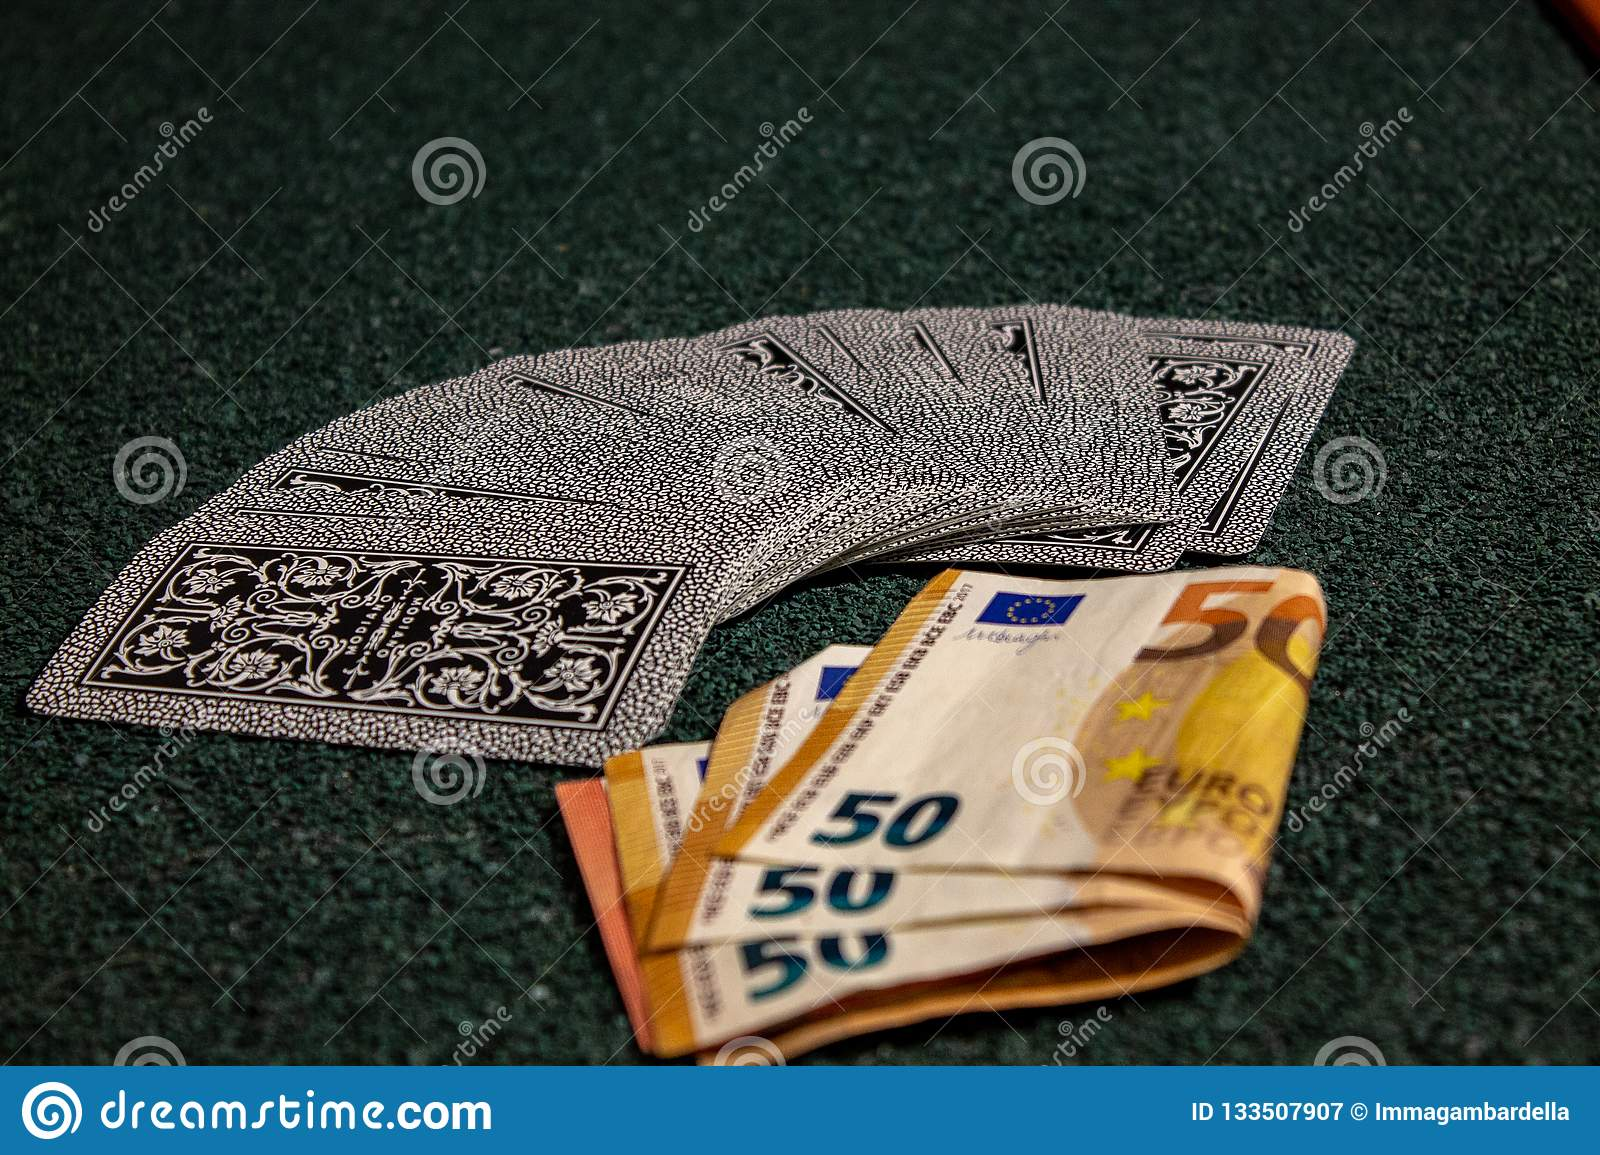 Gambling, with cards, money, or simply card game when the family is reunited.